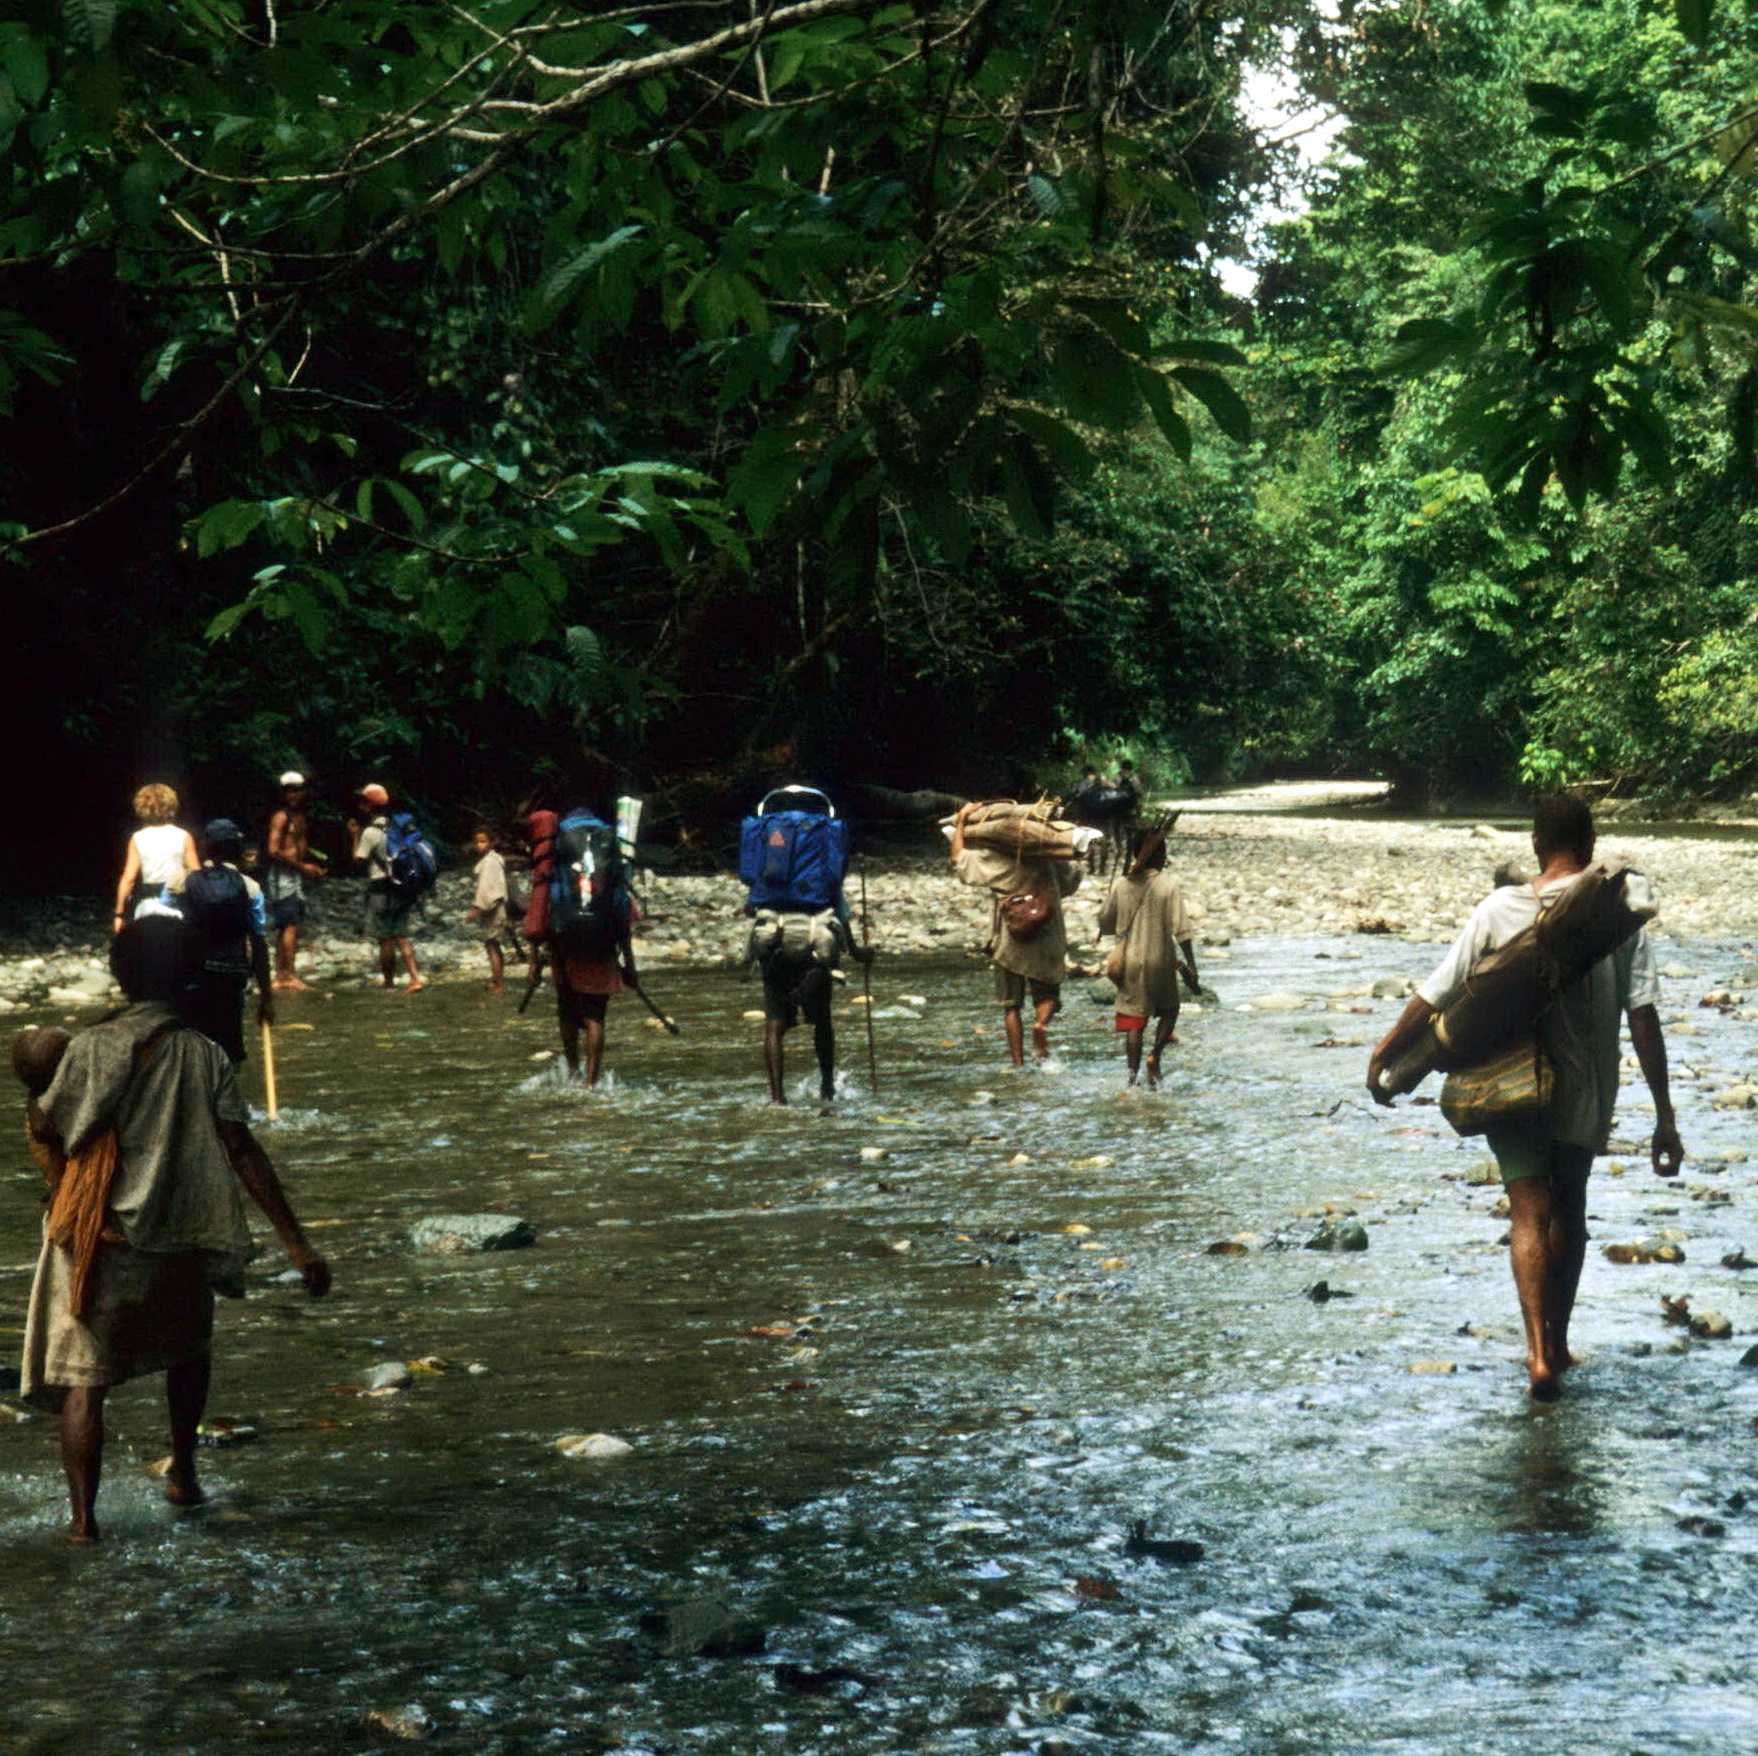 Following the Rivers, West Sepik, New Guinea Art, Oceanic Art, Tribal Art, South Pacific